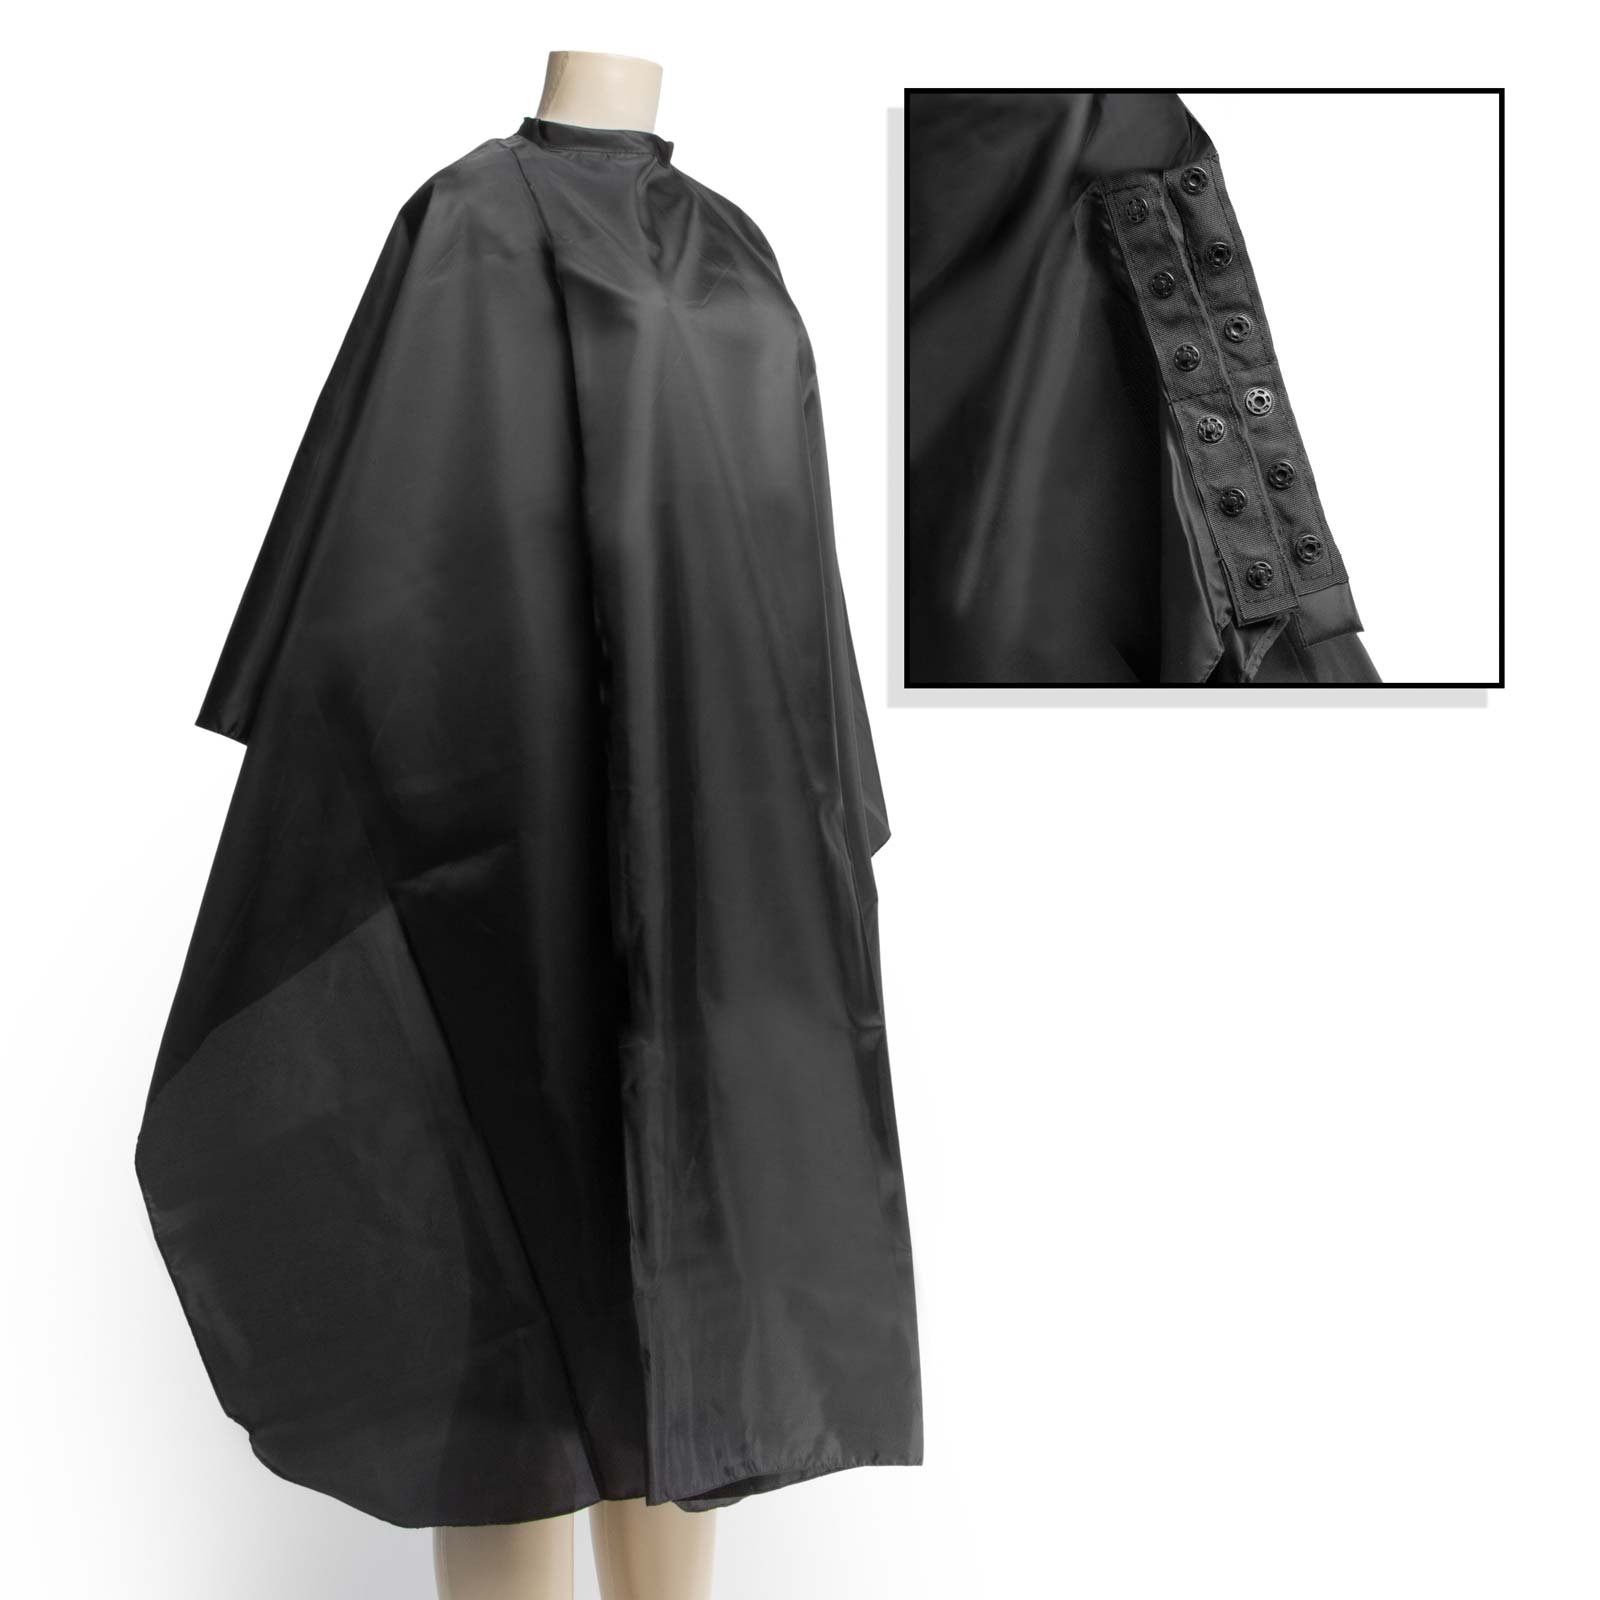 "Salon Sundry Professional Hair Salon Nylon Cape with Snap Closure - 50"" x 60"" Black"